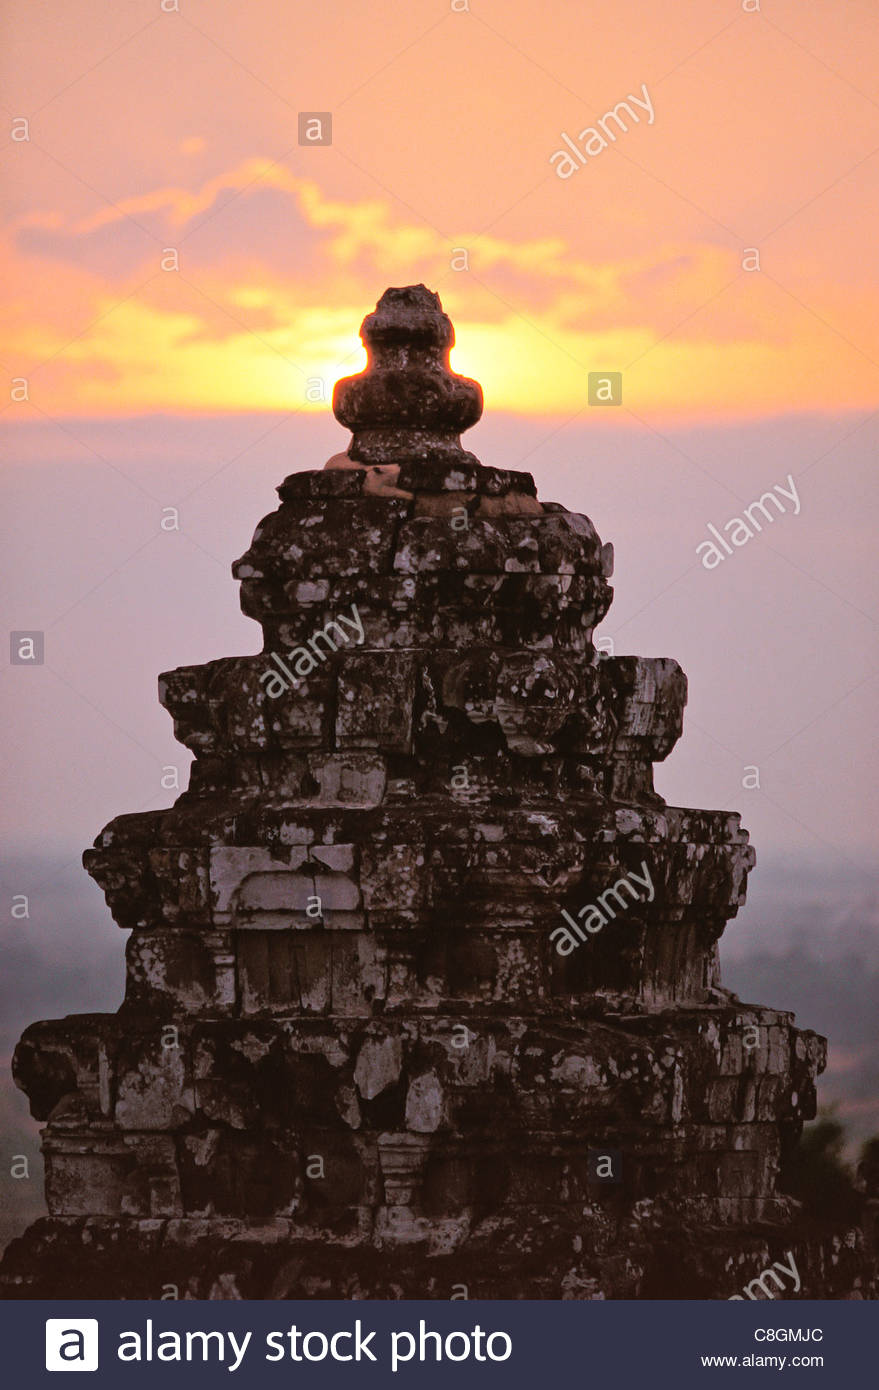 The Borobudur Buddhist monument dates to 9th century in Central Java. - Stock Image